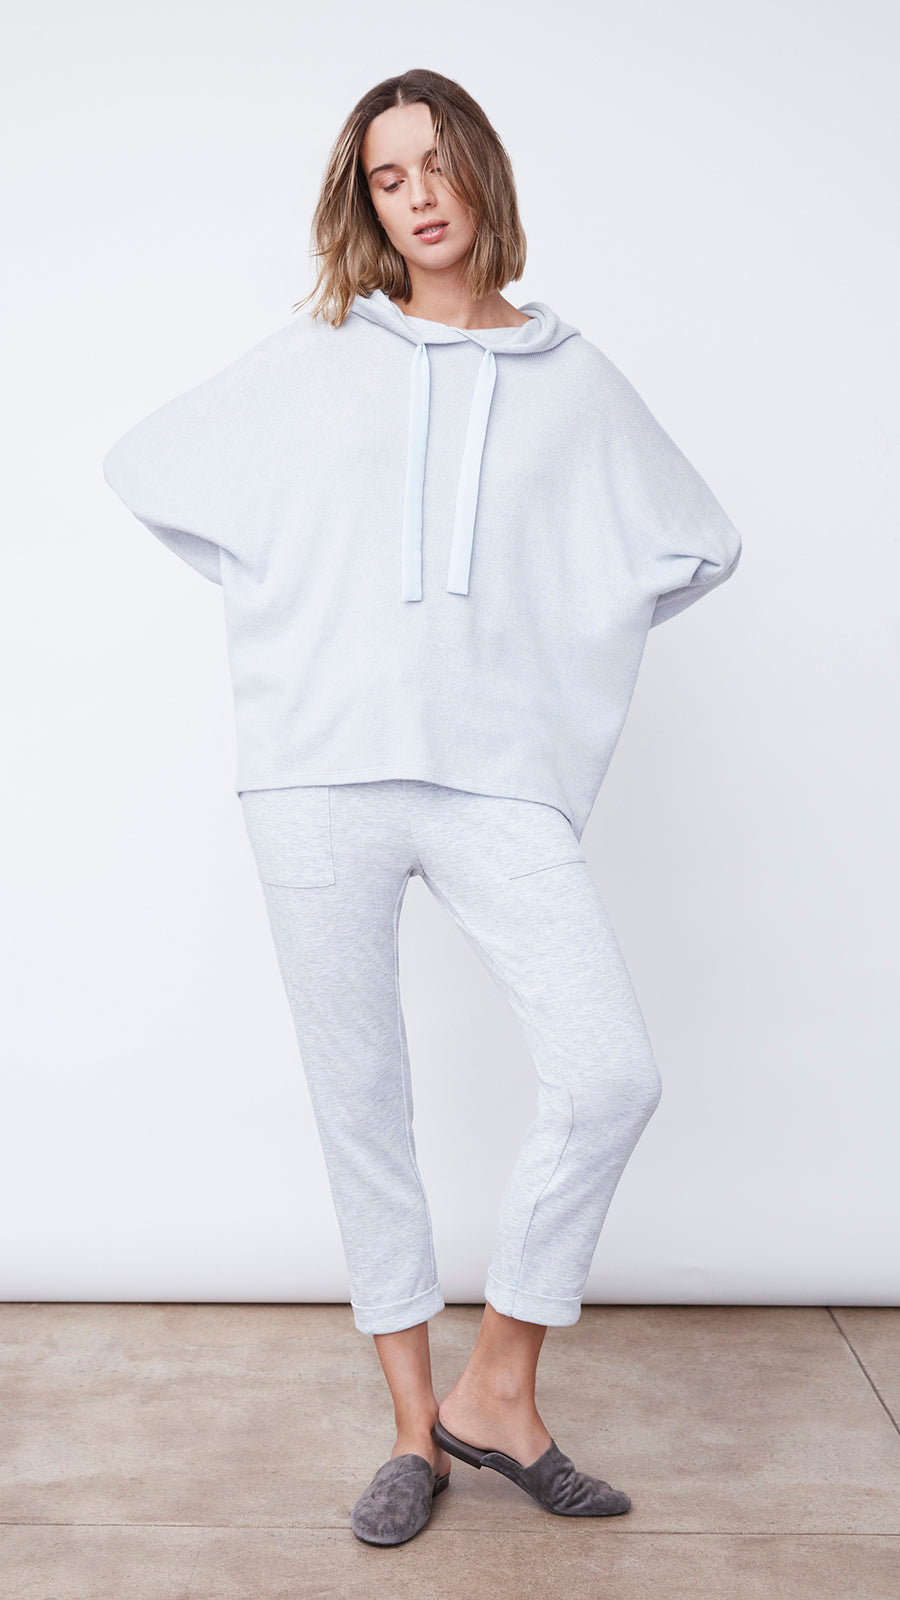 Textured Easy Hoodie in Stella Blue Heather - Women's Apparel | b New York